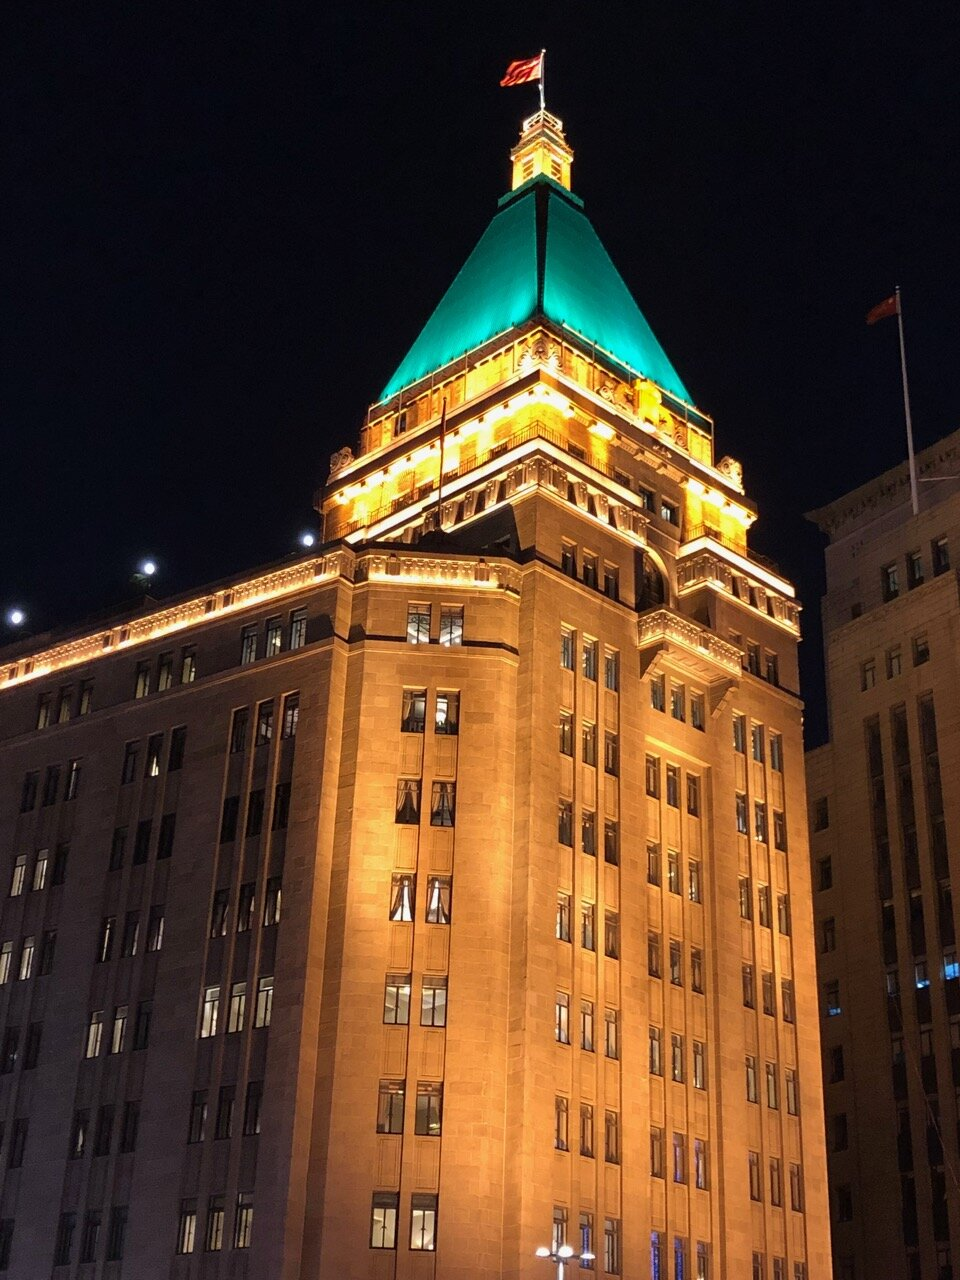 The Peace Hotel with its famous tower as seen from the Bund at night